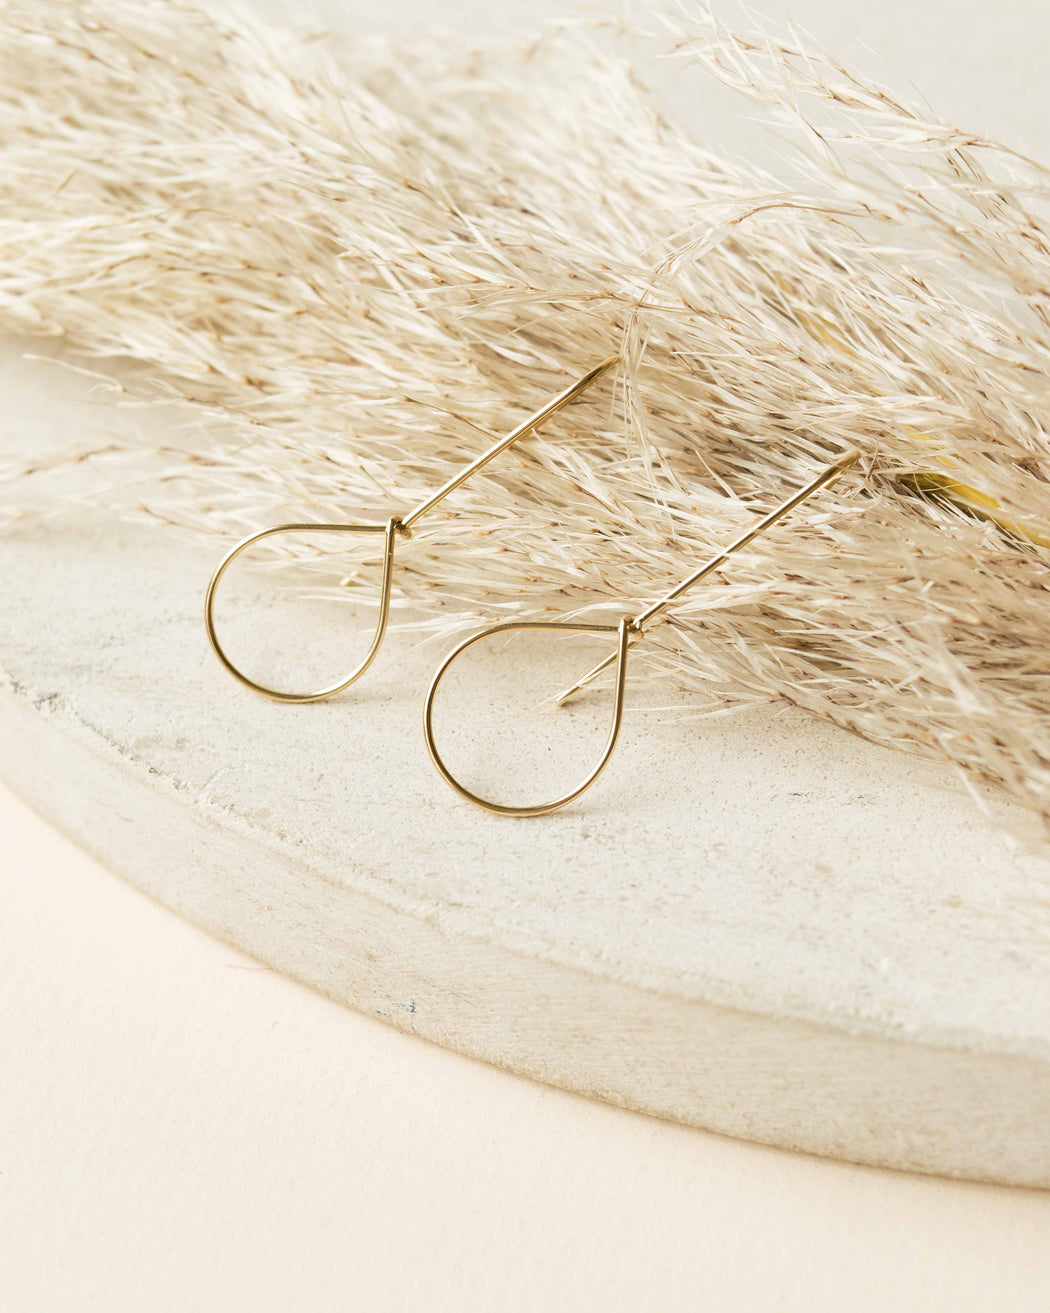 Goldeluxe Jewelry - Teardrop Hoops